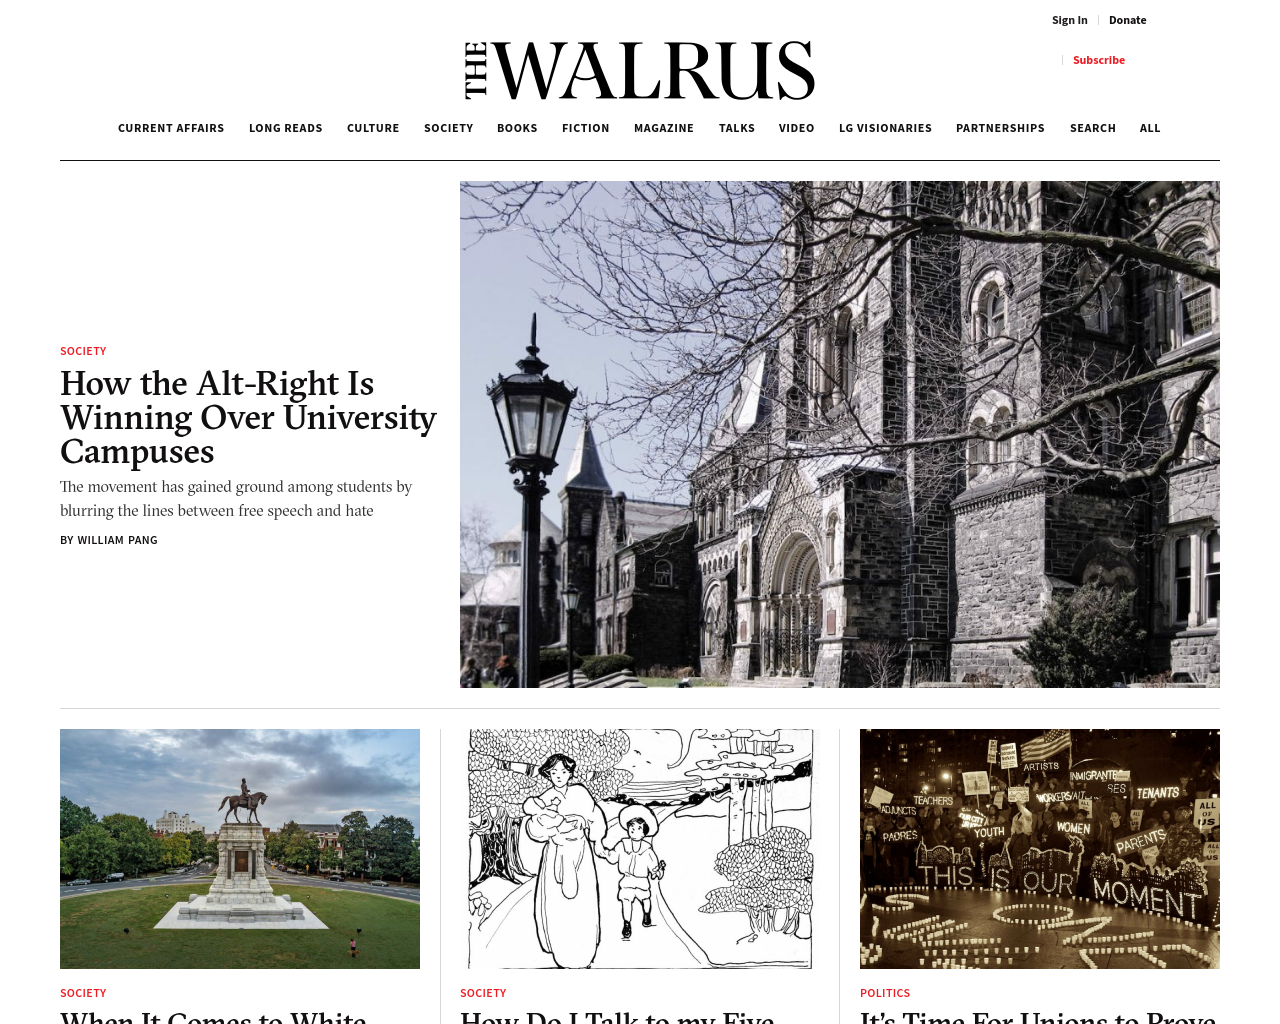 The-Walrus-Advertising-Reviews-Pricing